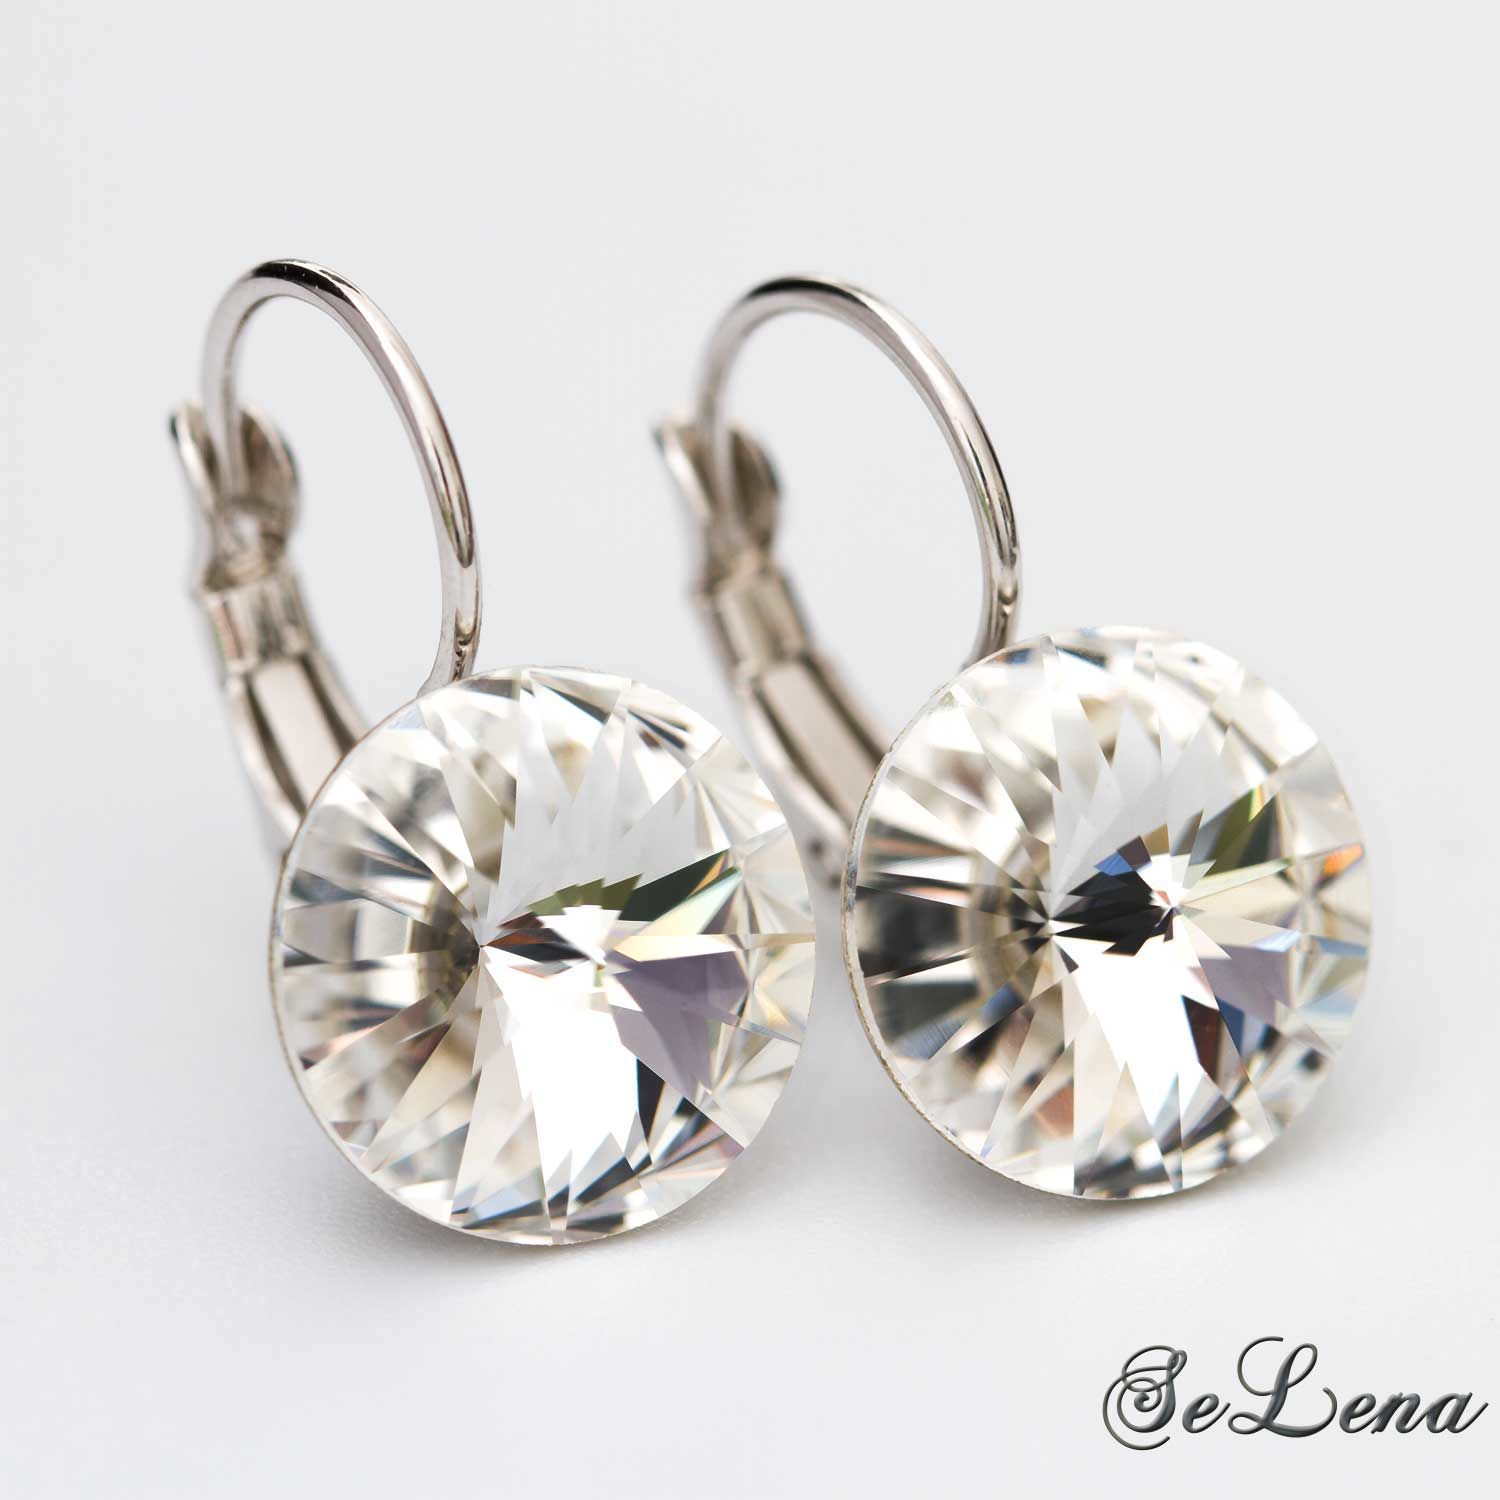 Swarovski Earrings With Round Crystals Colors To Choose From купить на Ярмарке Мастеров In5a3com Серьги St Petersburg